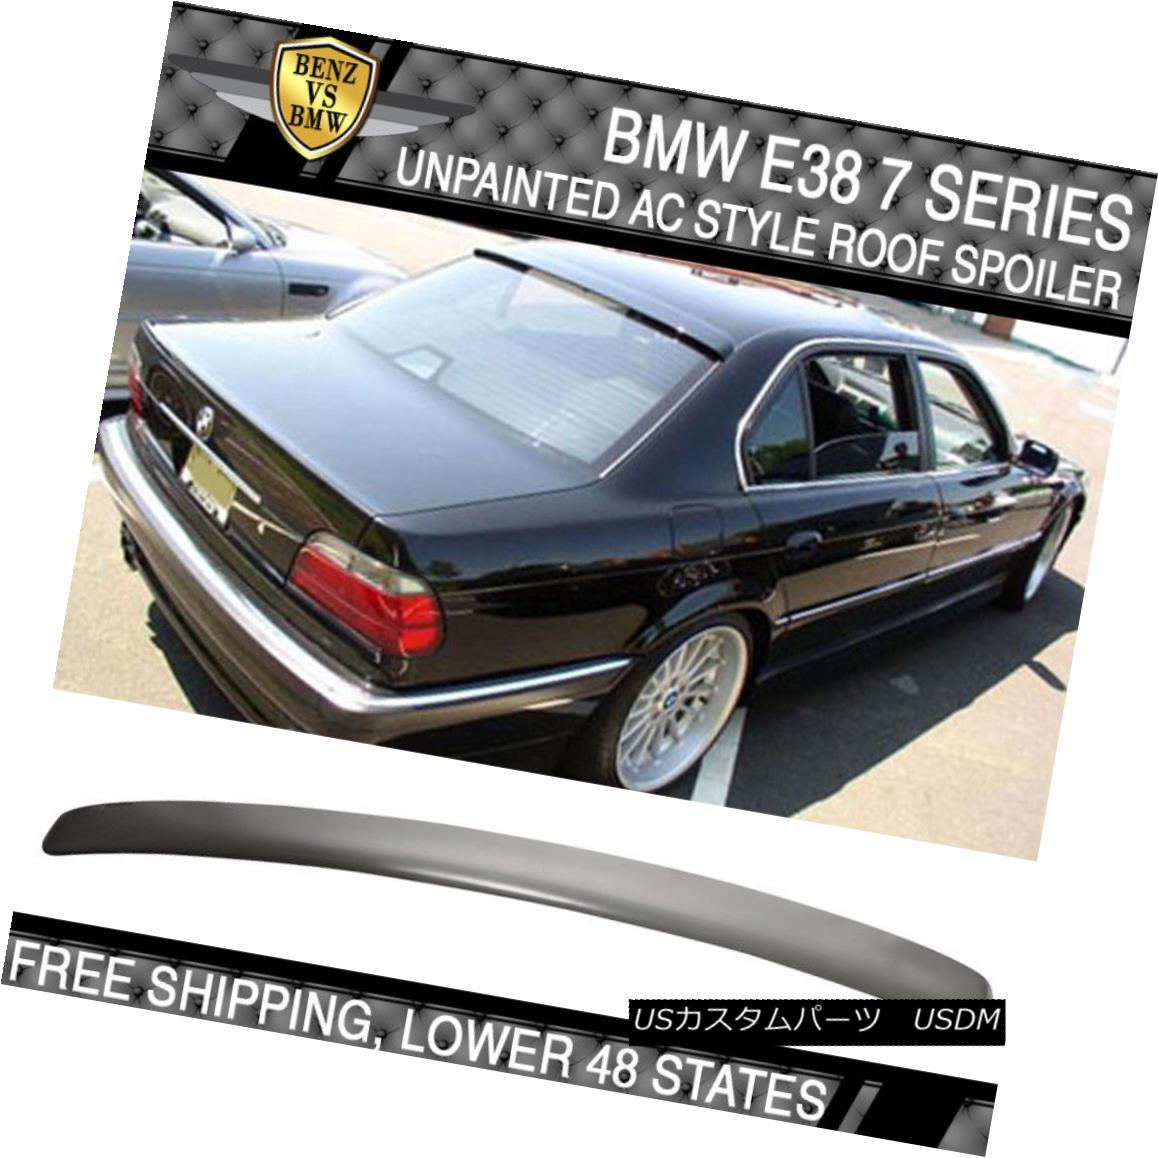 外装・エアロパーツ, その他  95 96 97 98 99 00 01 BMW E38 7 Series 4Dr AC Style Roof Spoiler ABS Unpainted 95 96 97 98 99 00 01 BMW E38 74Dr ACABS